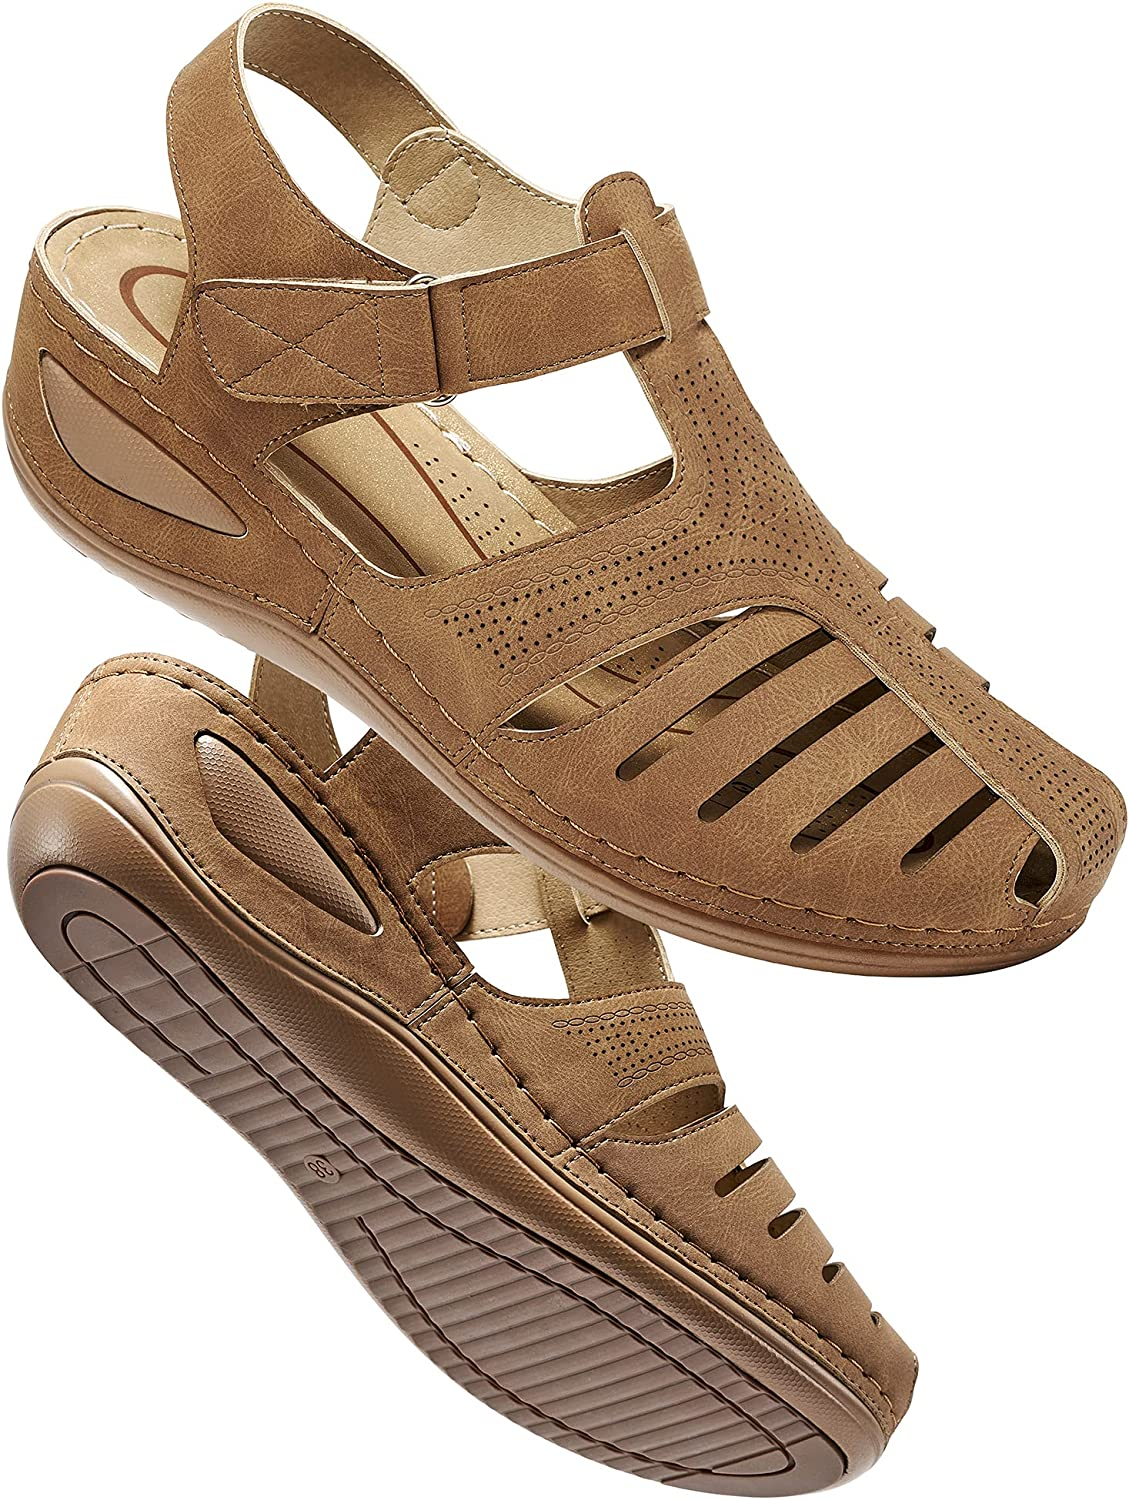 Women's Summer Sandals Casual Max 49% OFF Bohemia Comf Shoes Credence Wedge Gladiator